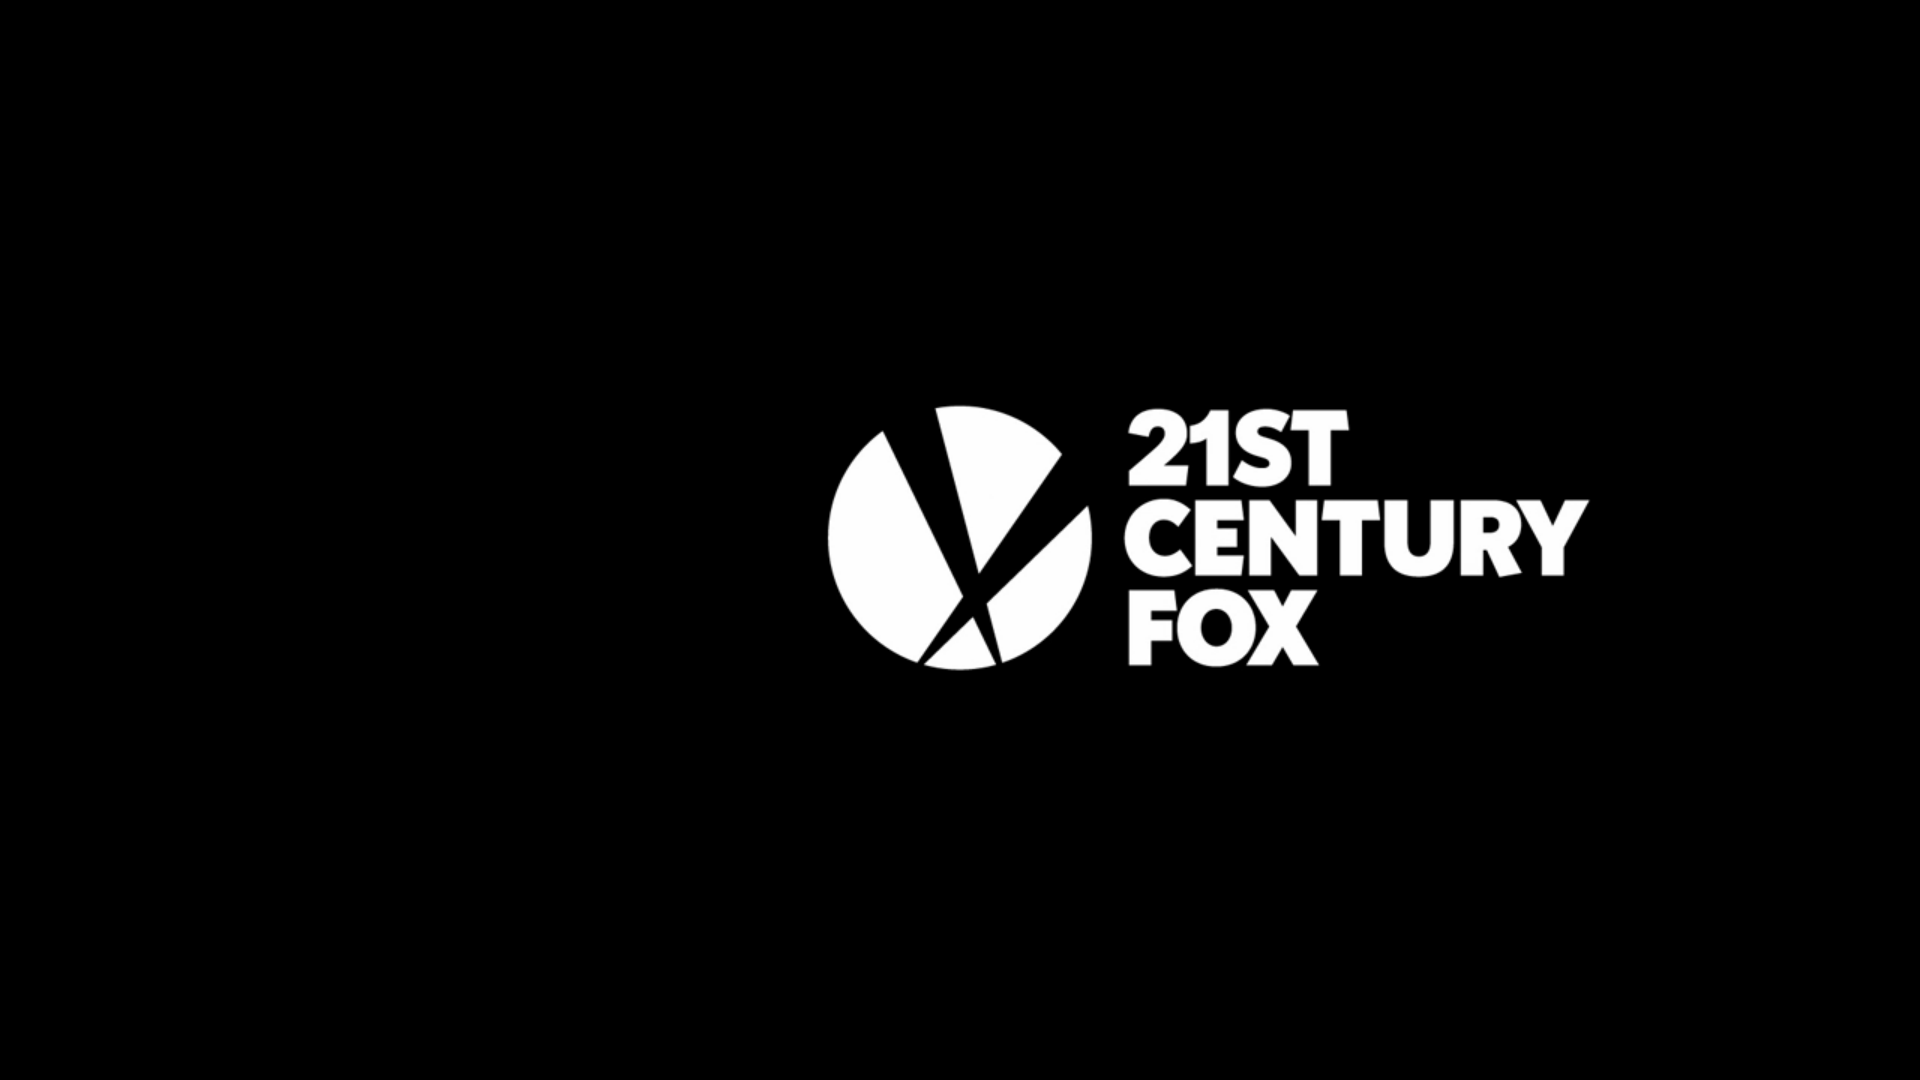 21st Century Fox New Logo Redesign Pentagram